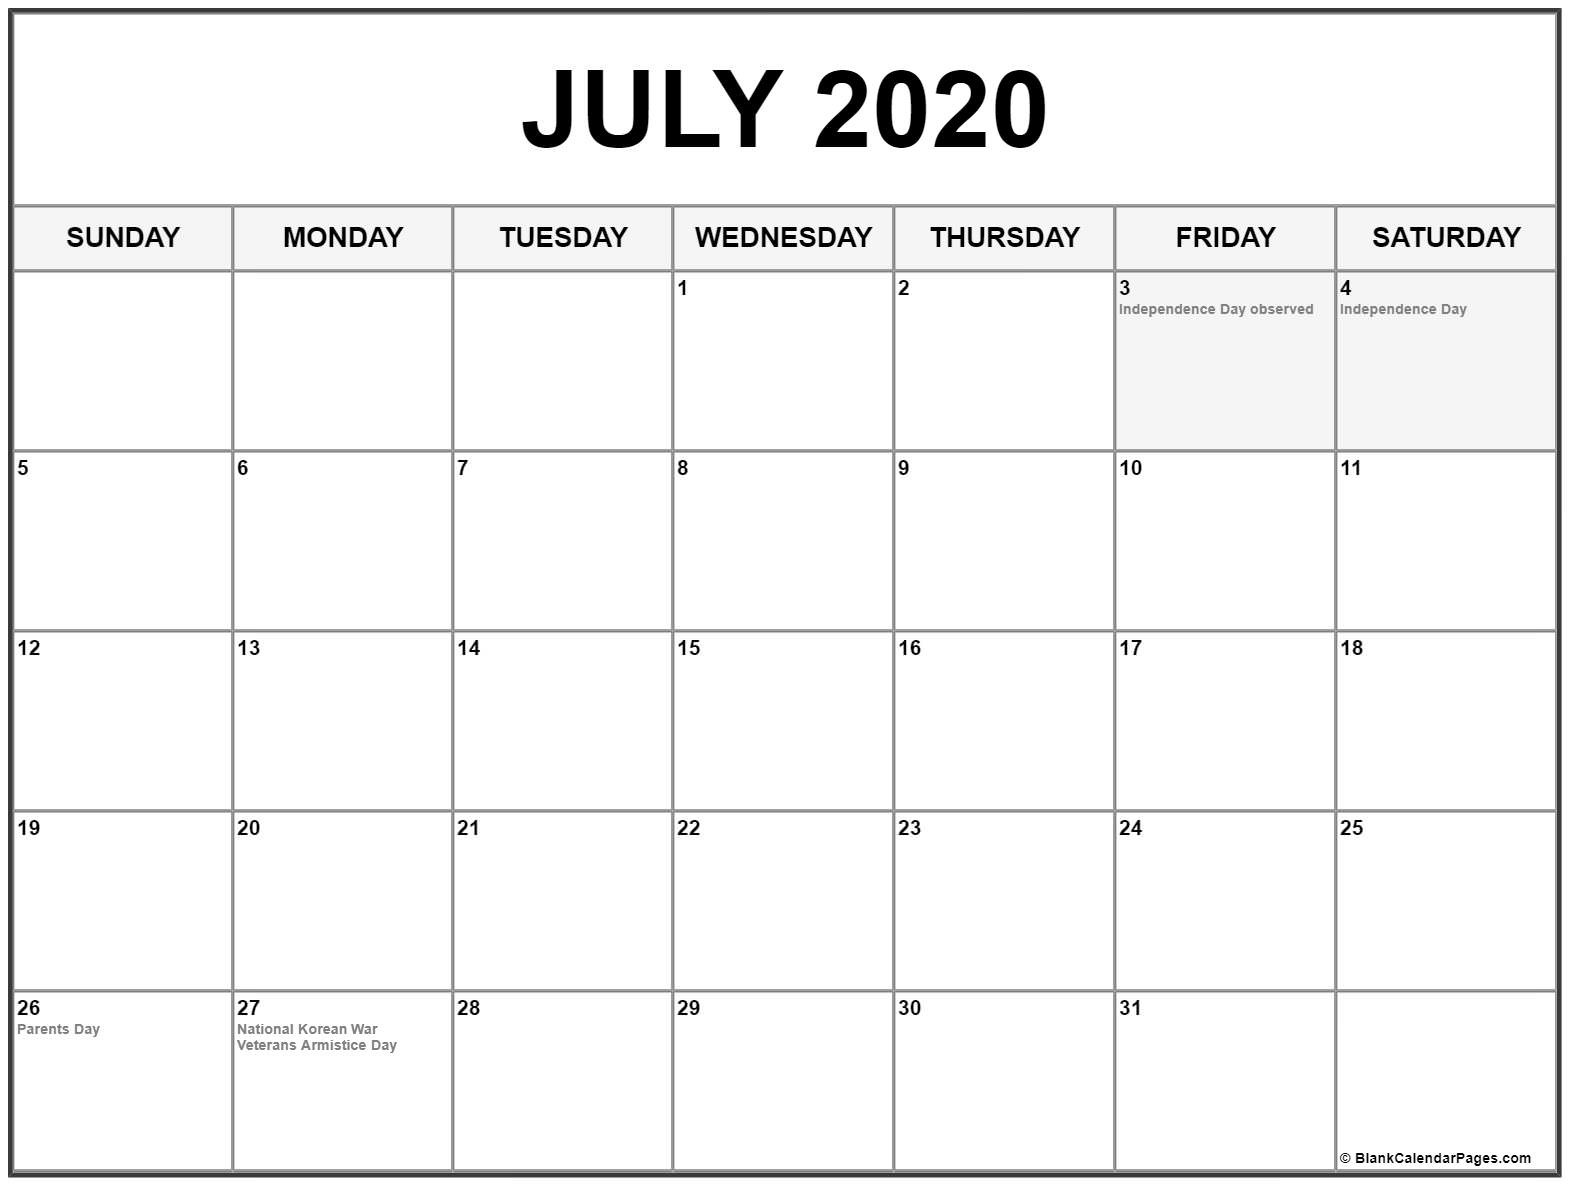 Collection Of July 2020 Calendars With Holidays  2020 Fun National Holiday Calendar